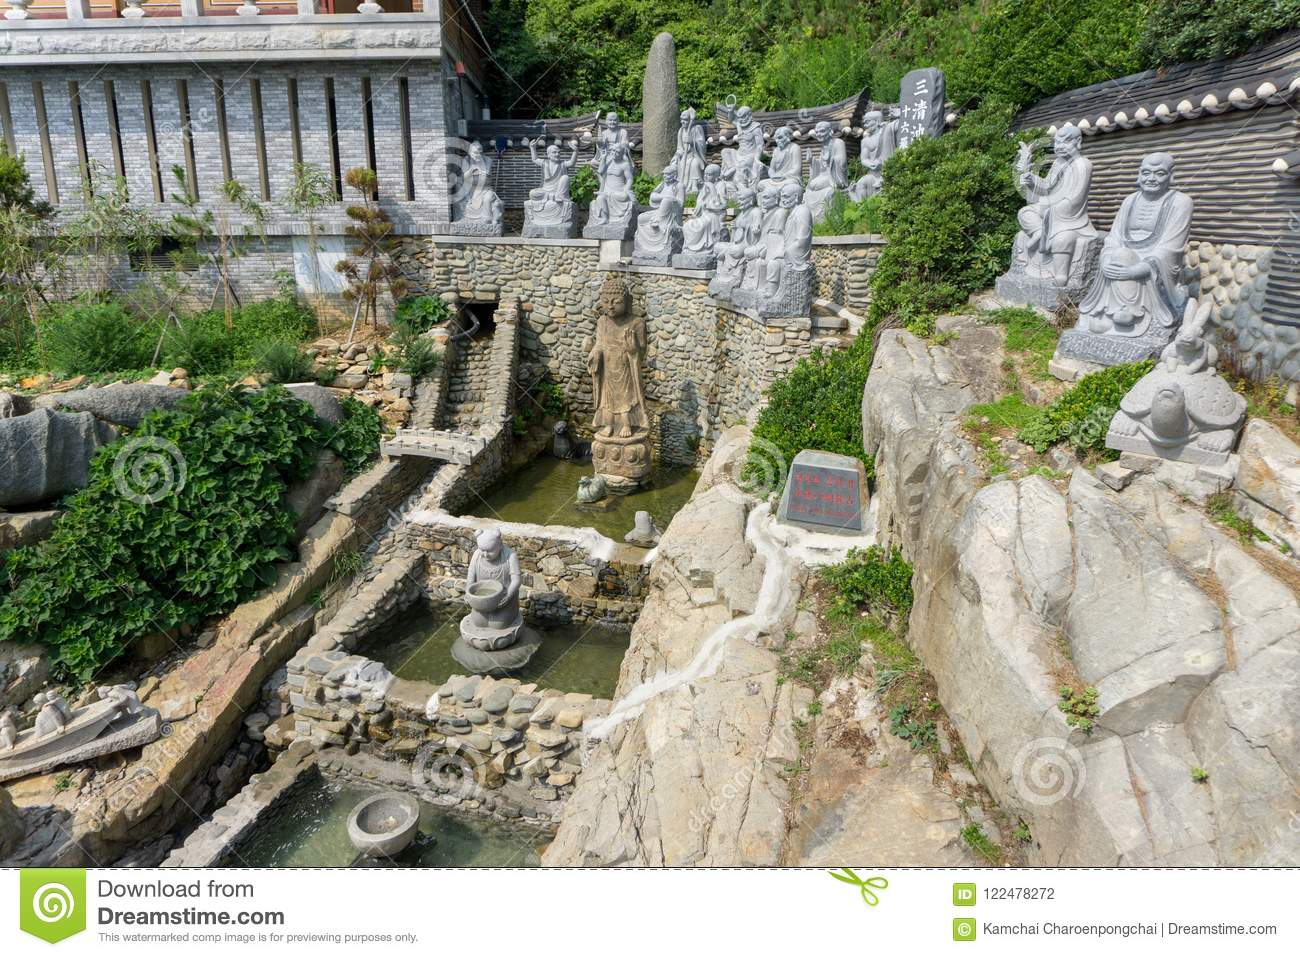 White stone carved statues of Chinese Buddha, priests and many animals on the artificial waterfall at Haedong Yonggungsa Temple